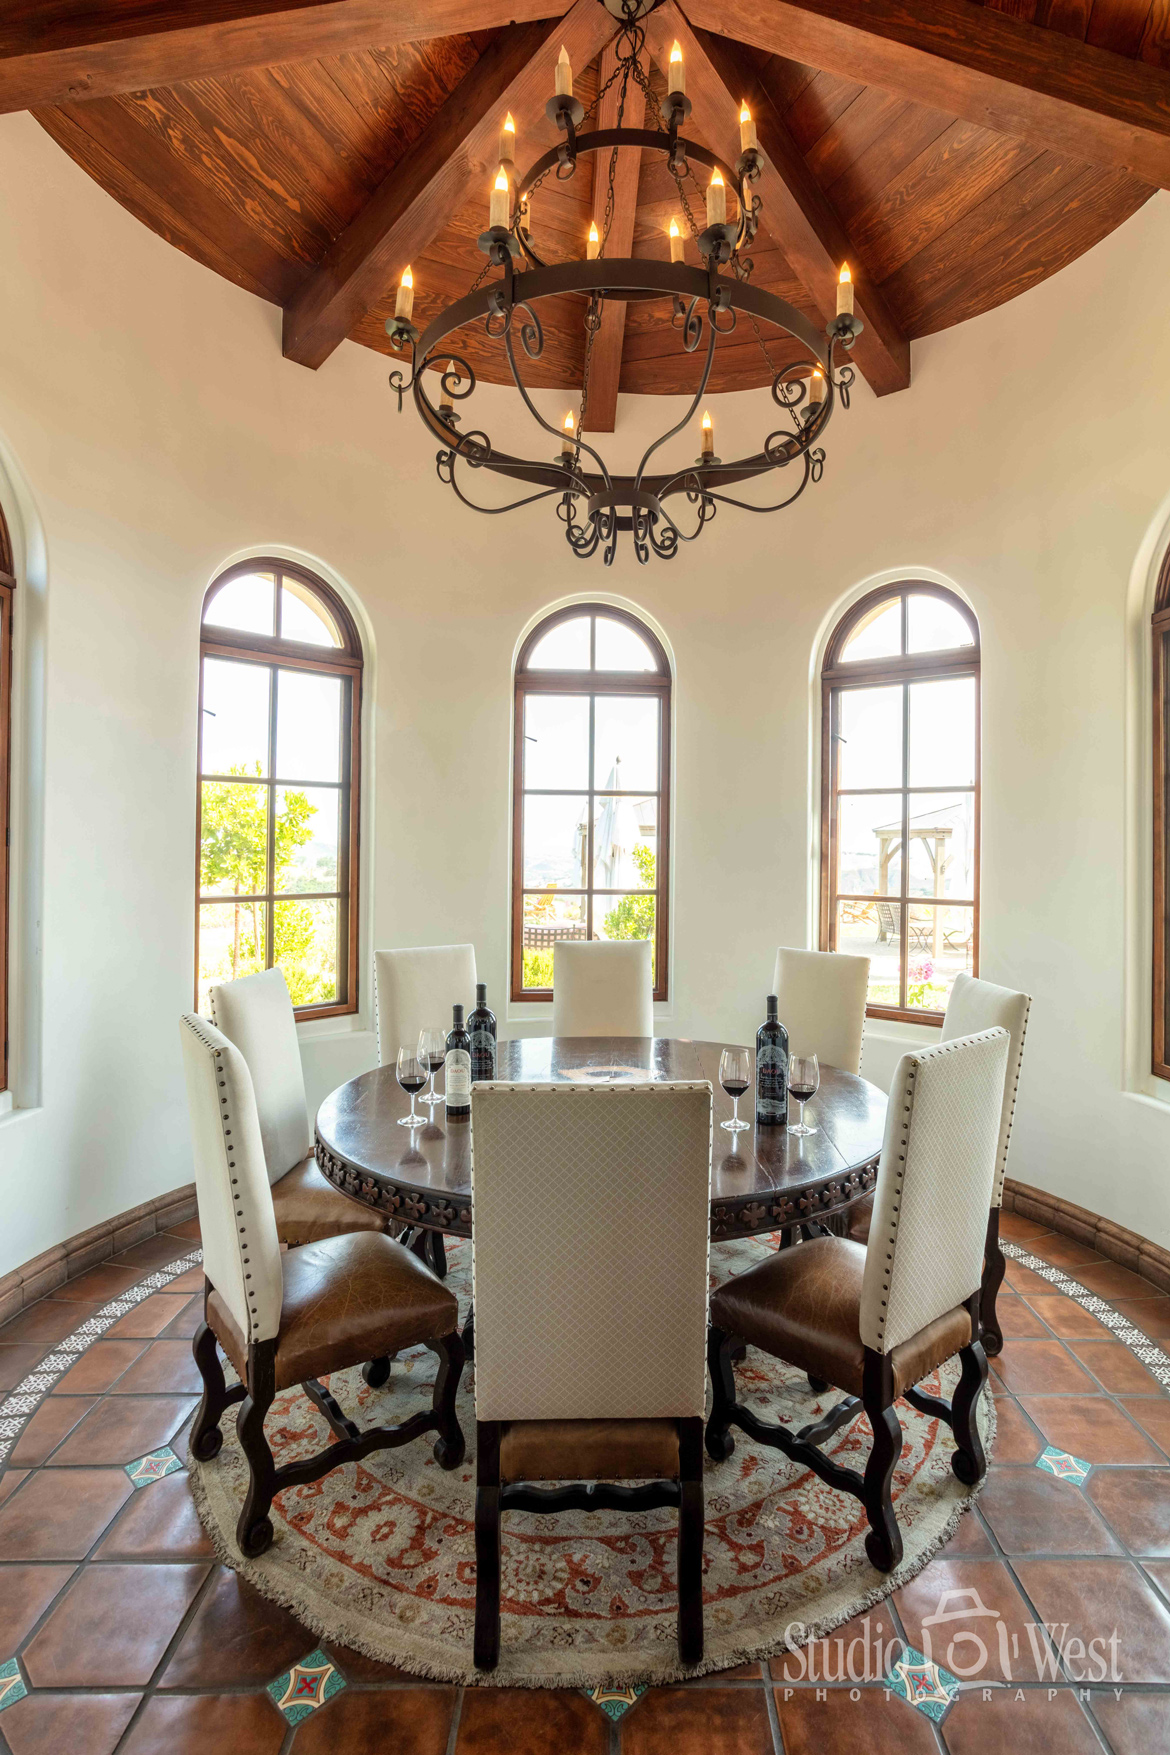 DAOU Winery - Daou Family Estate - Wine Tasting Private Room - Architectural Photography Interior - Studio 101 West Photography